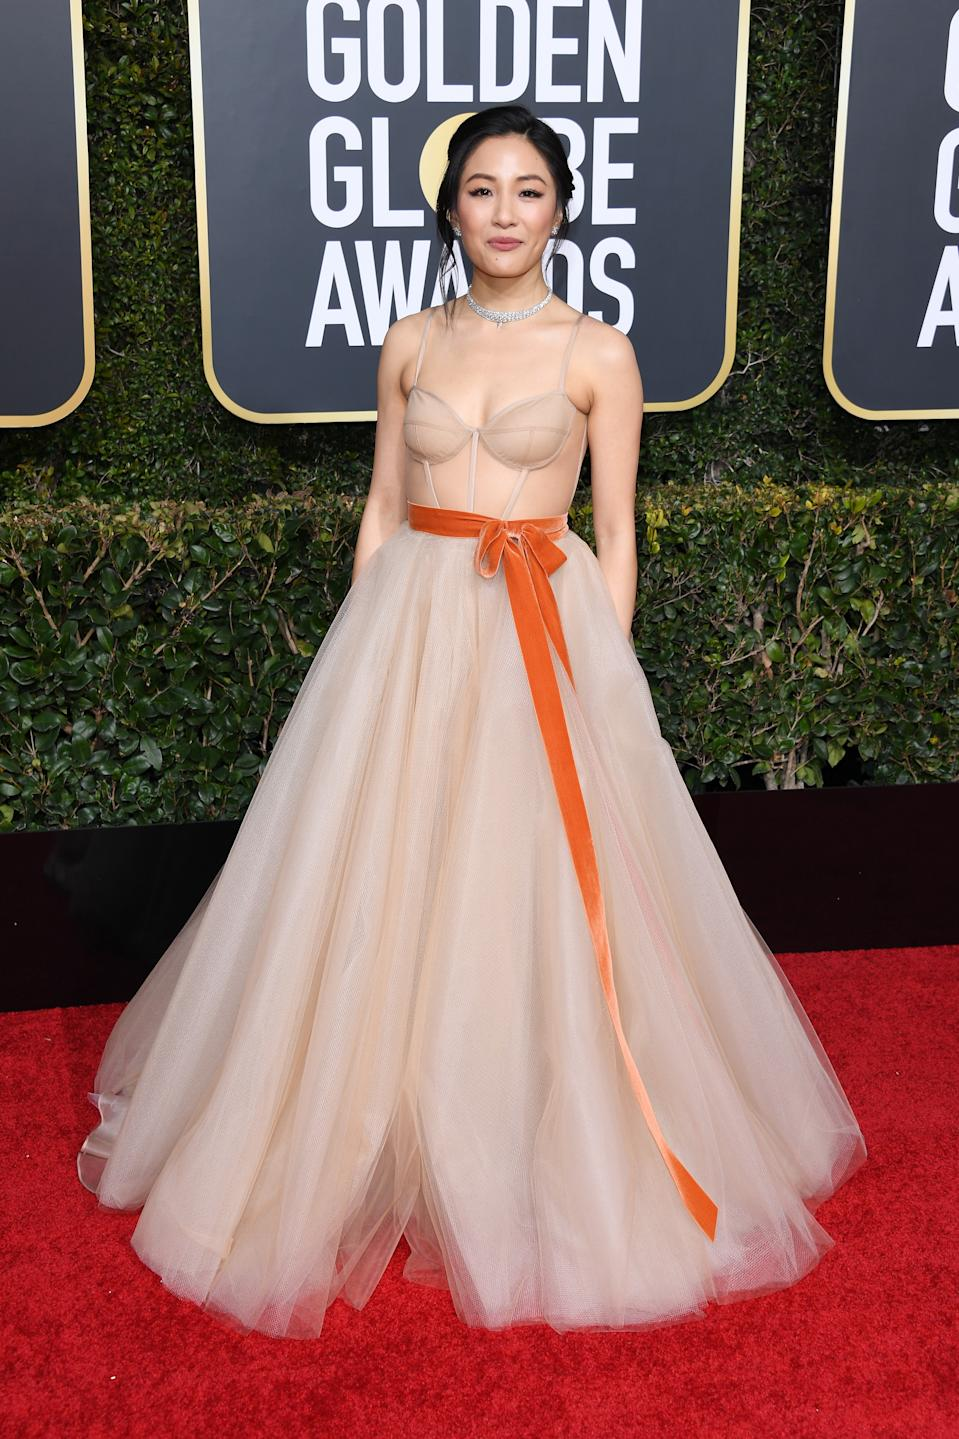 <p>After becoming the first Asian American woman to be nominated for an award in decades, Constance Wu showed up to the 2019 Golden Globes dressed to impress in this nude coloured tulle princess gown, with an orange accent ribbon around the waist. (Image via Getty Images)</p>